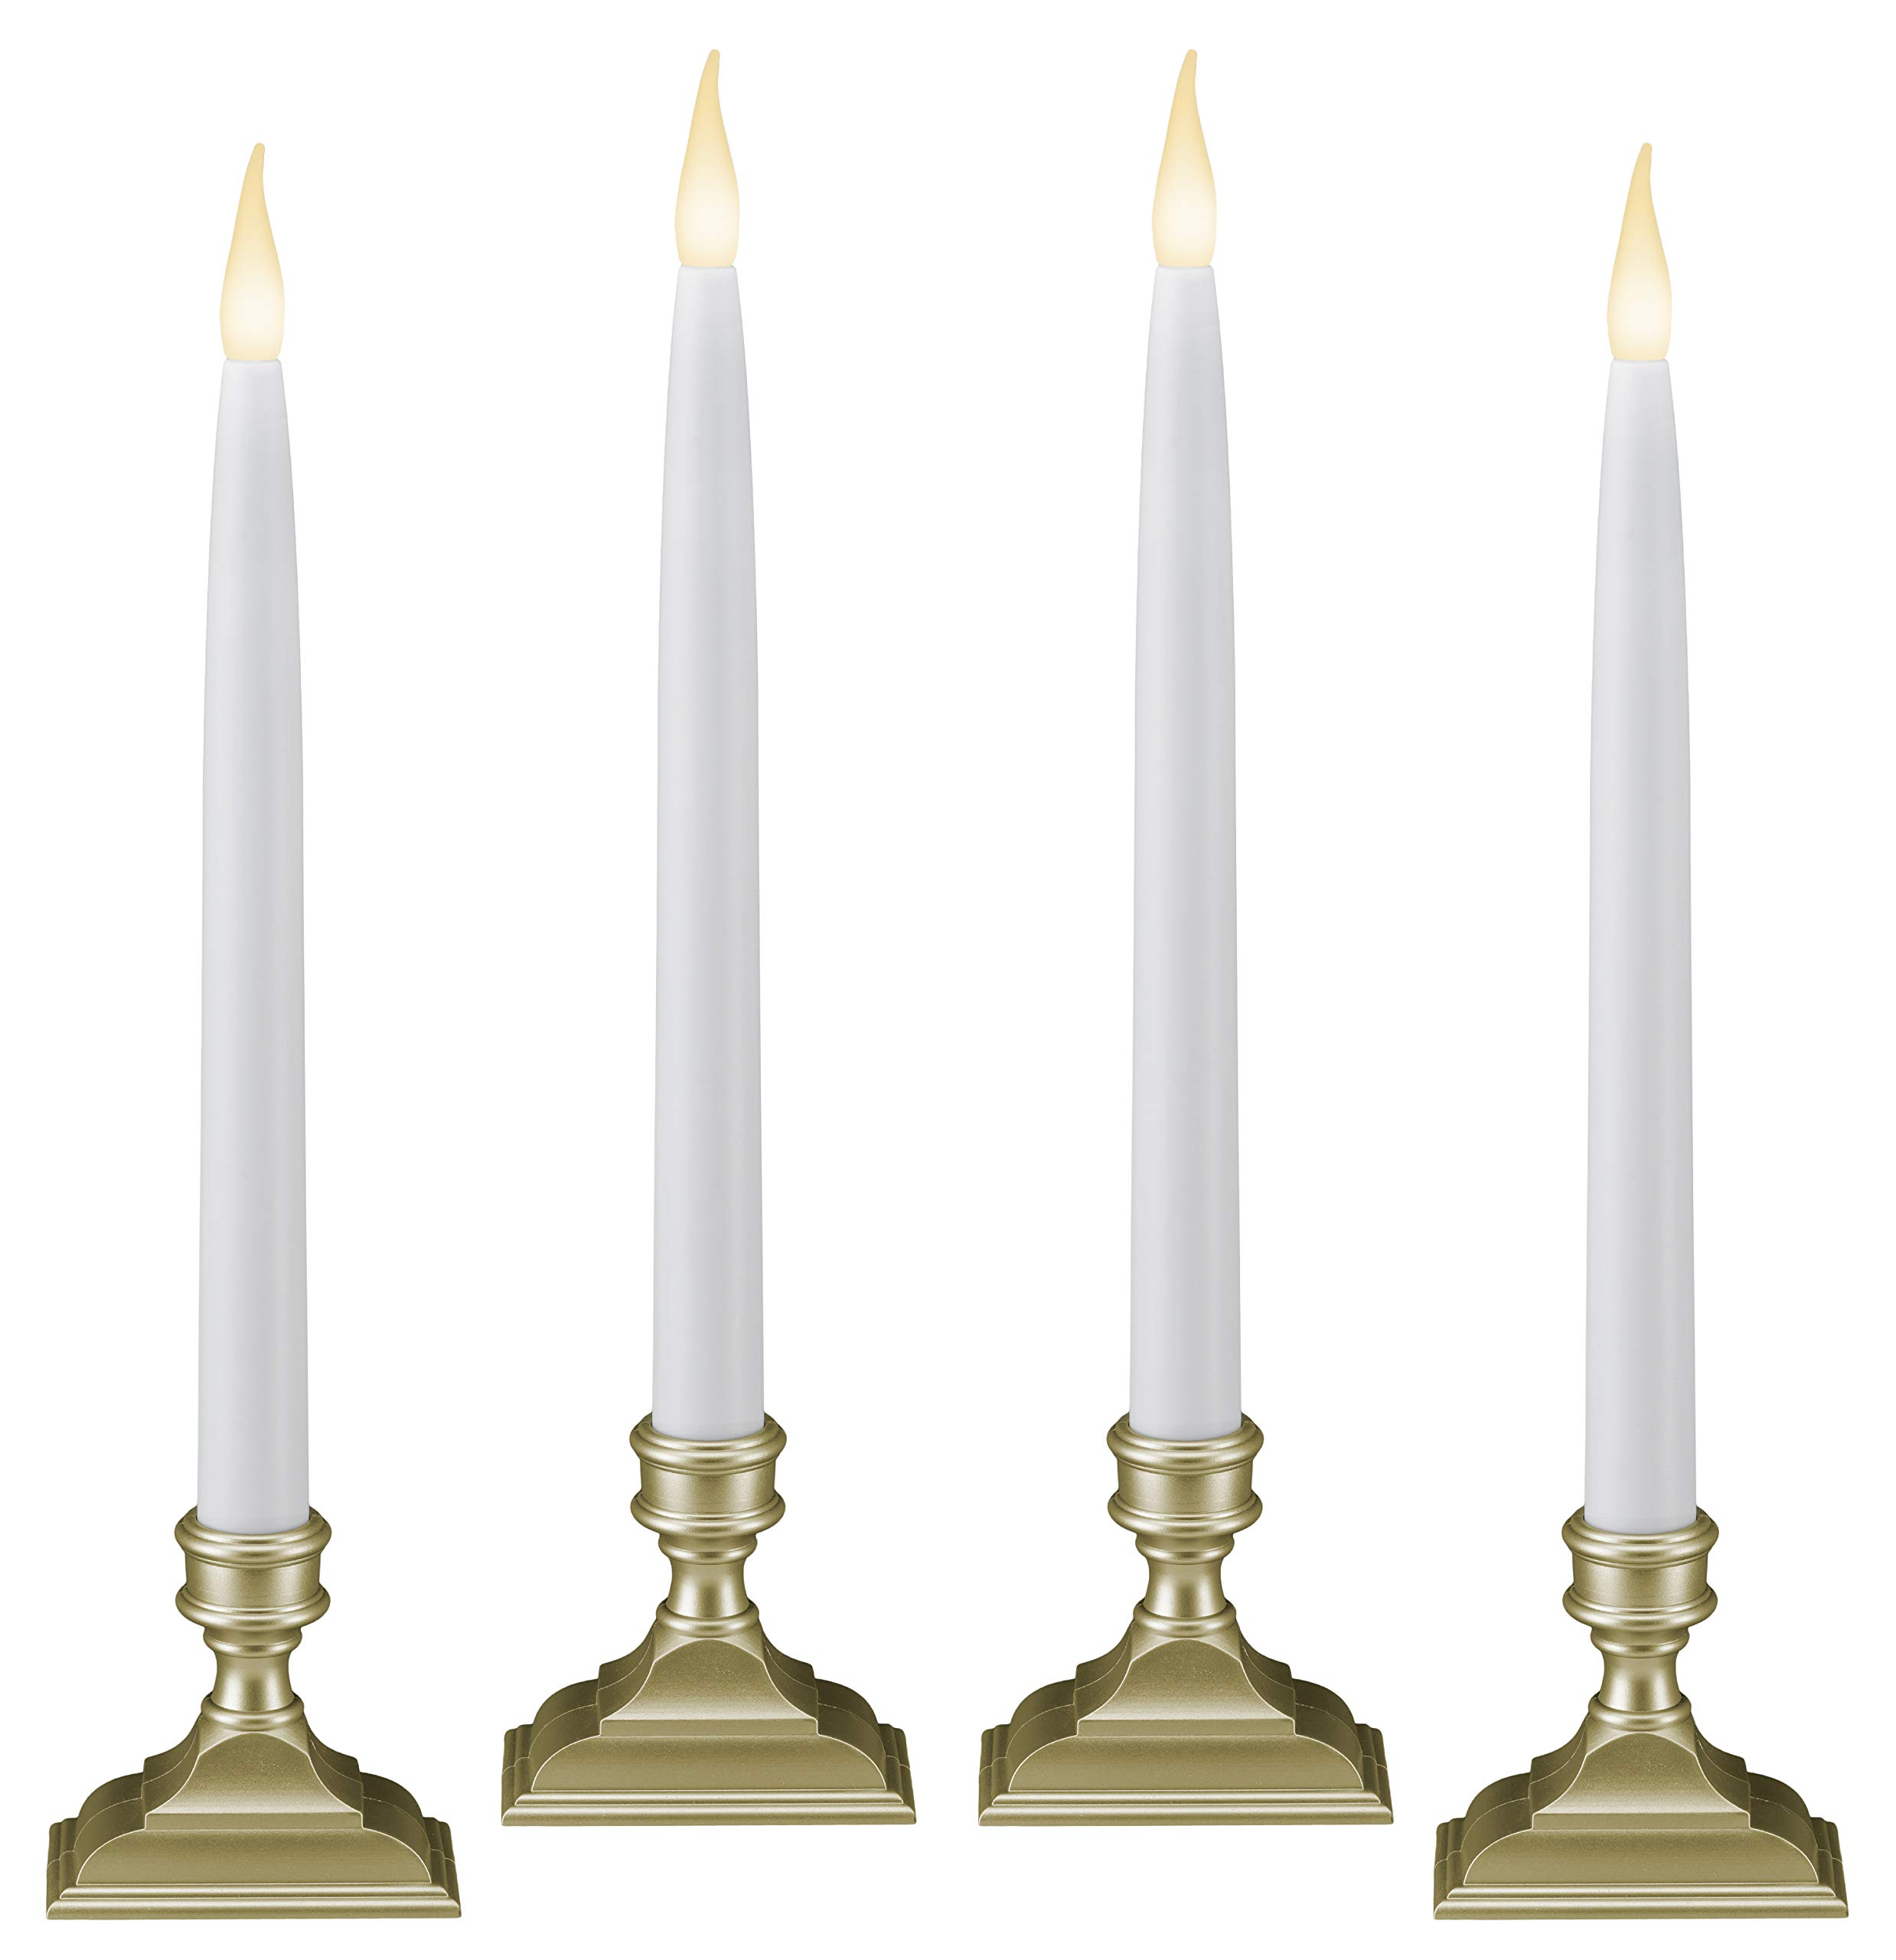 612 Vermont Battery Operated LED Window Candles with Timer (6 on/18 Off), Patented Warm White Dual LED Flicker Flame (Pack of 4, Pewter) by 612 Vermont